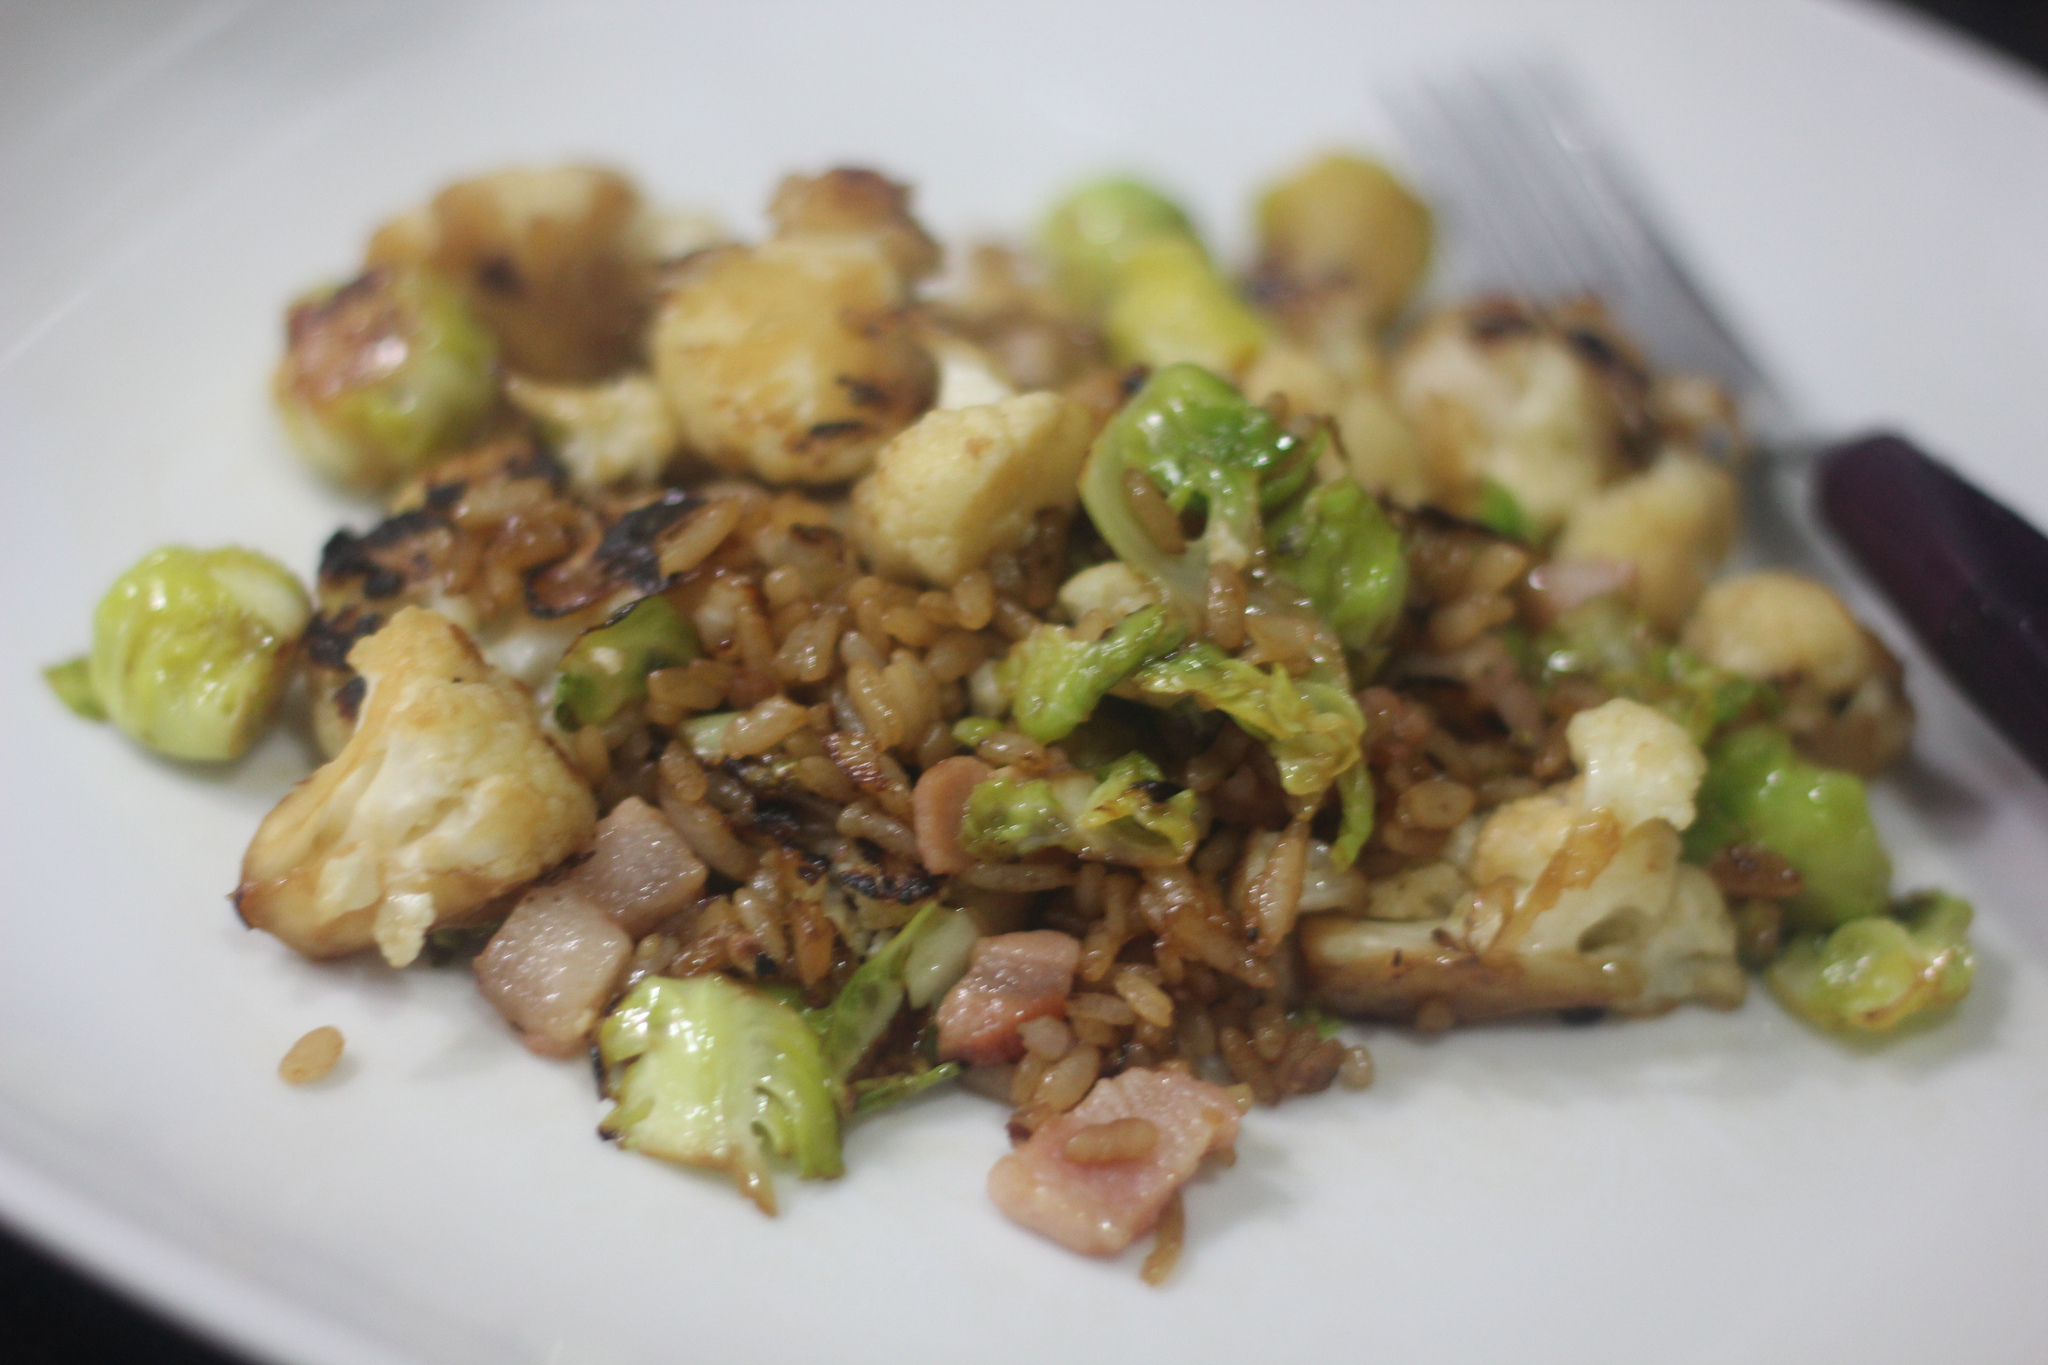 ... vegan brussels sprout fried vegan brussels sprout fried vegan brussels